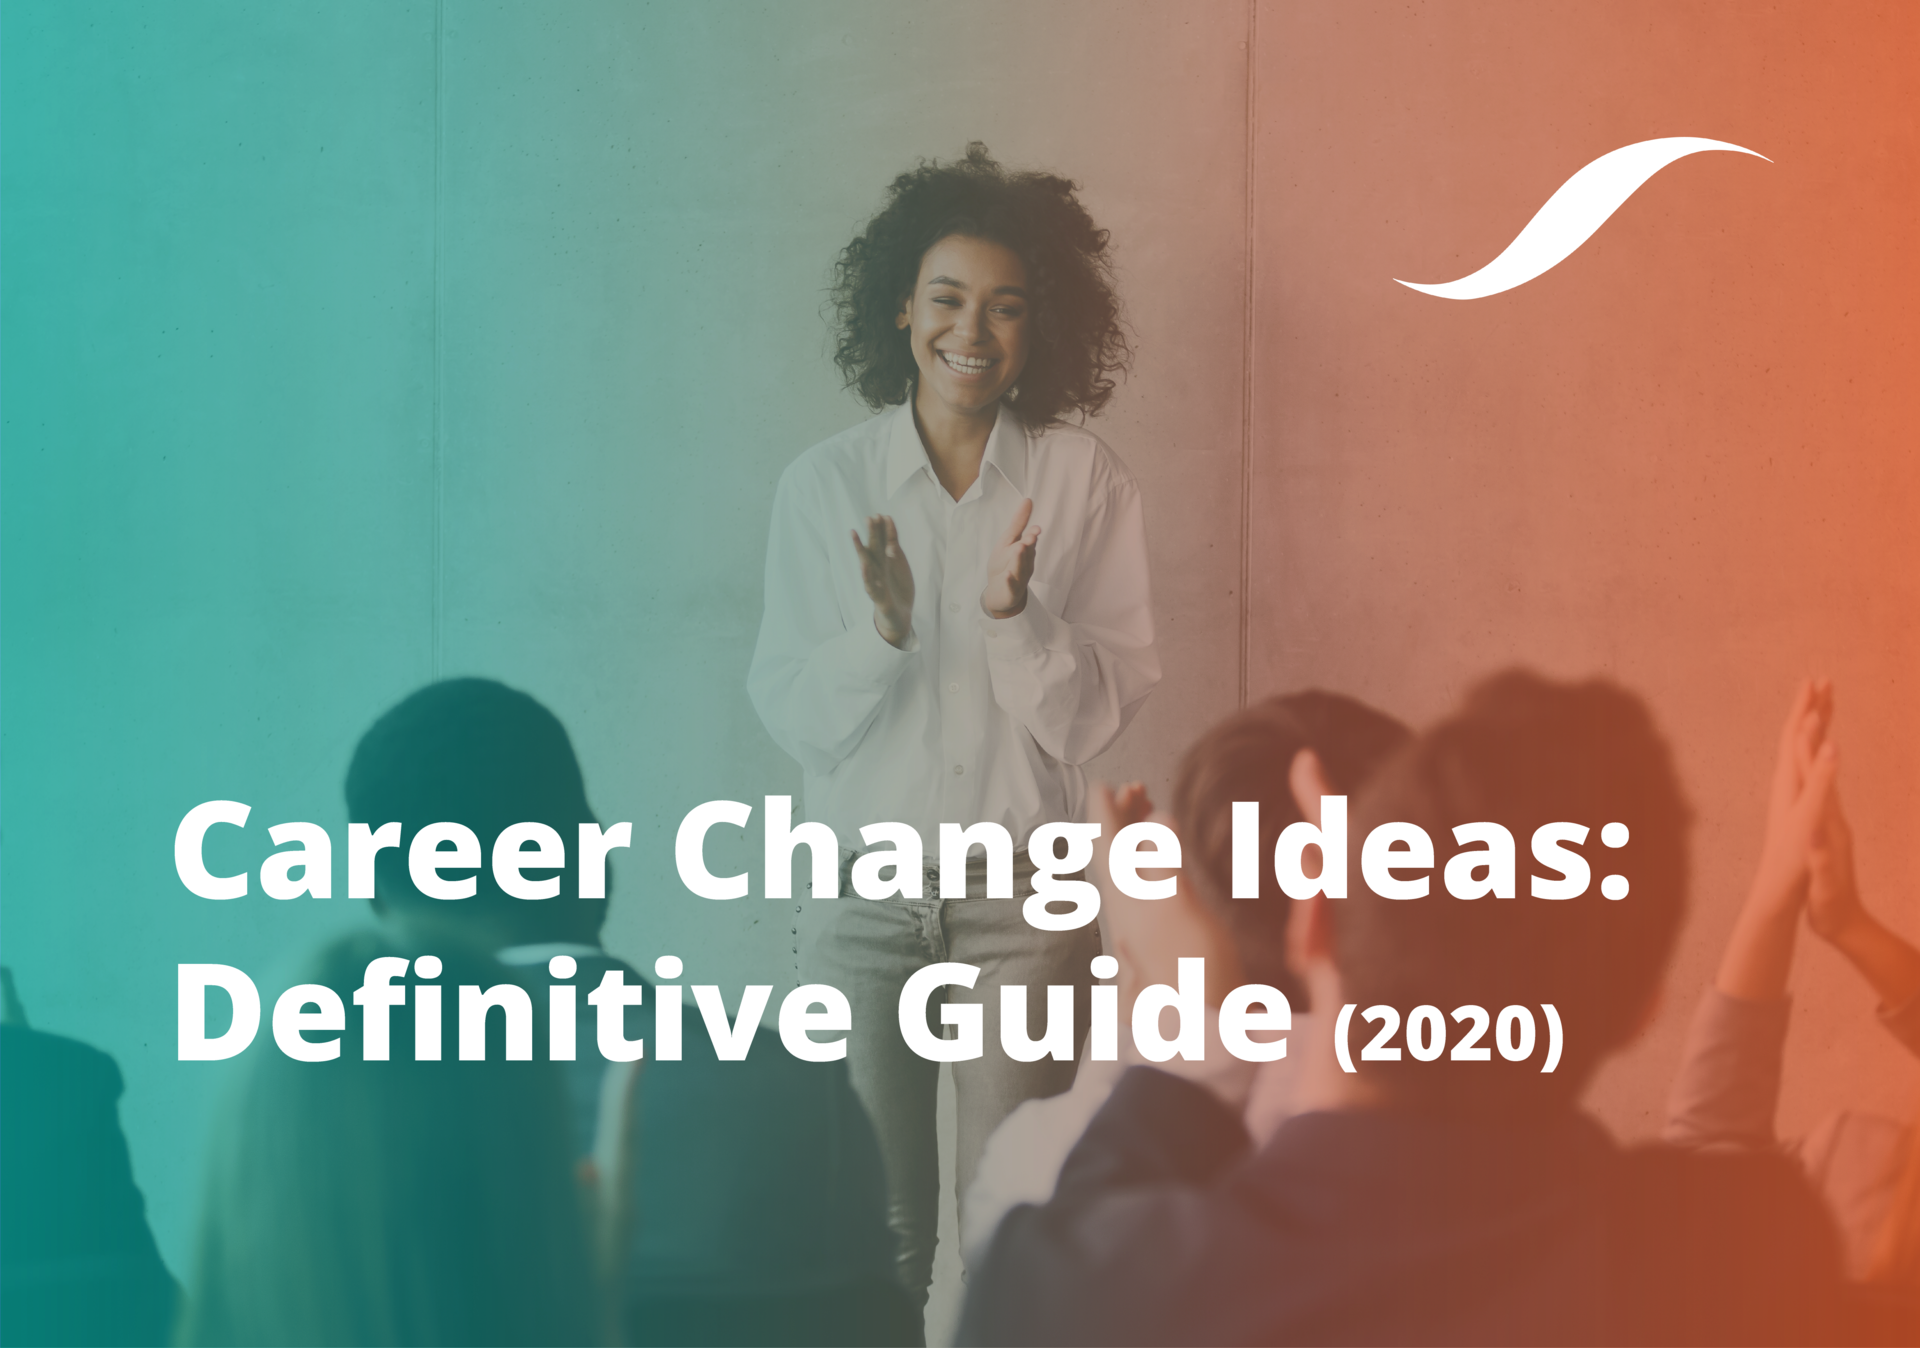 career change ideas header image